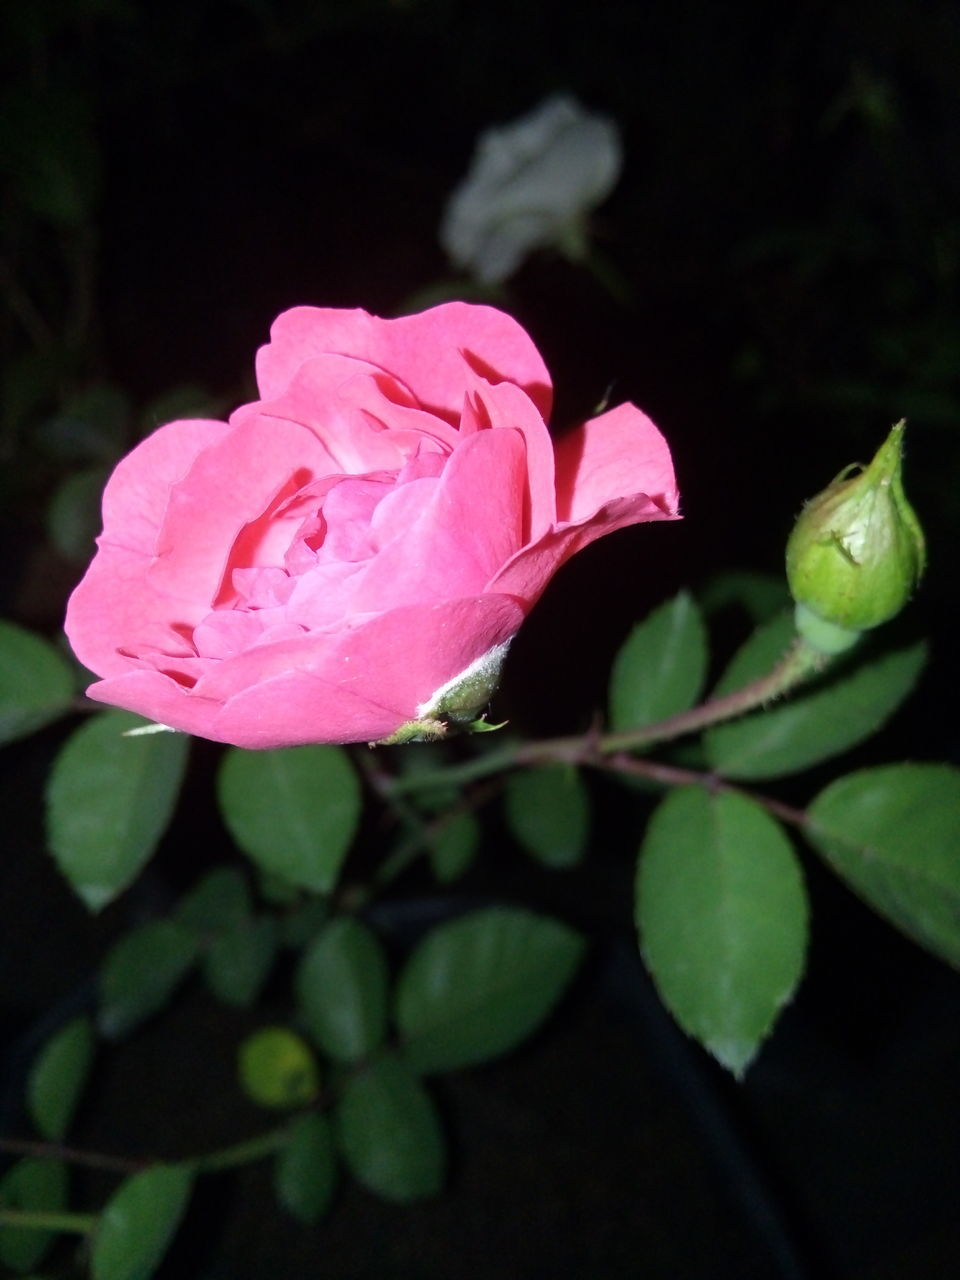 flower, nature, growth, petal, beauty in nature, plant, leaf, no people, fragility, pink color, night, flower head, close-up, freshness, outdoors